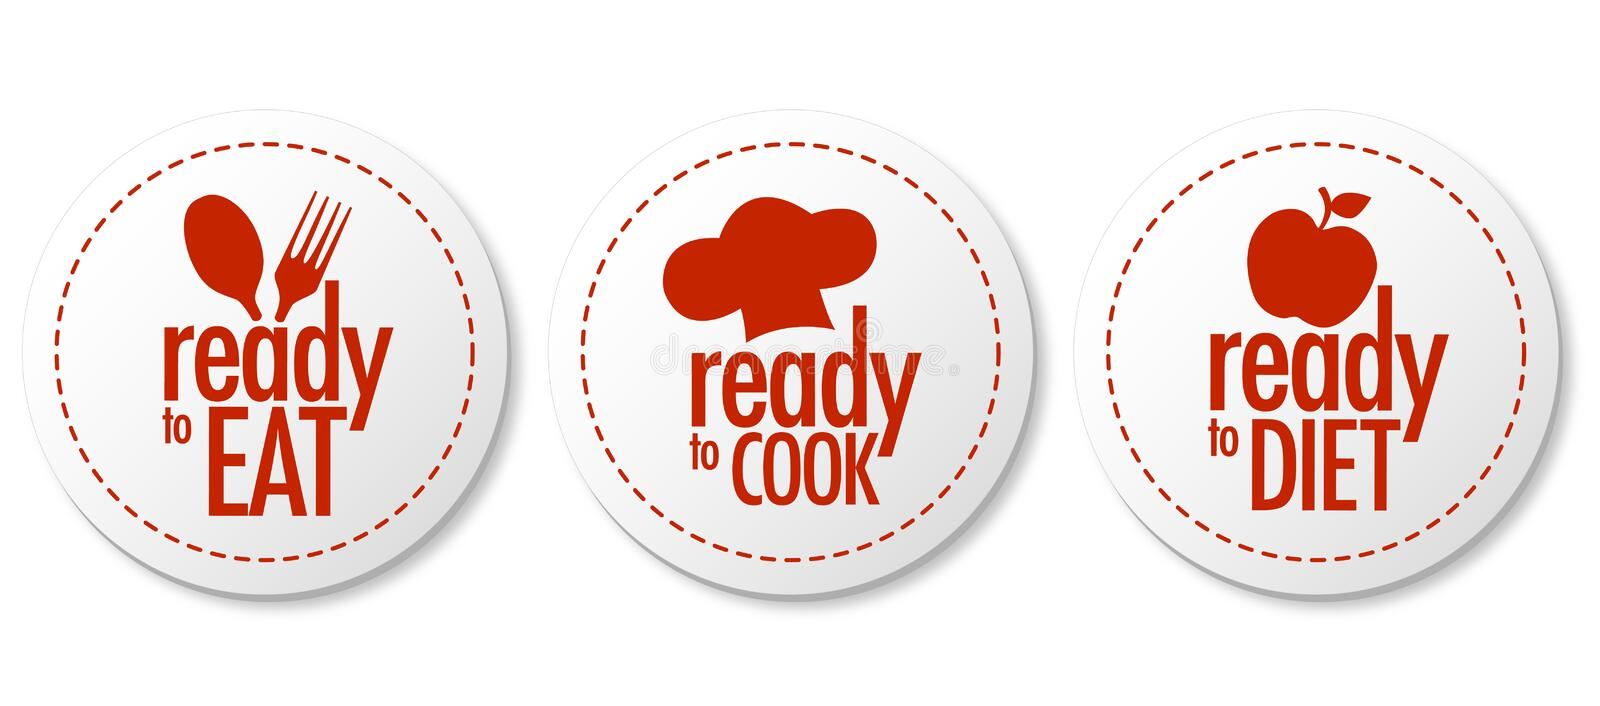 Ready to eat, diet and cook stickers stock illustration